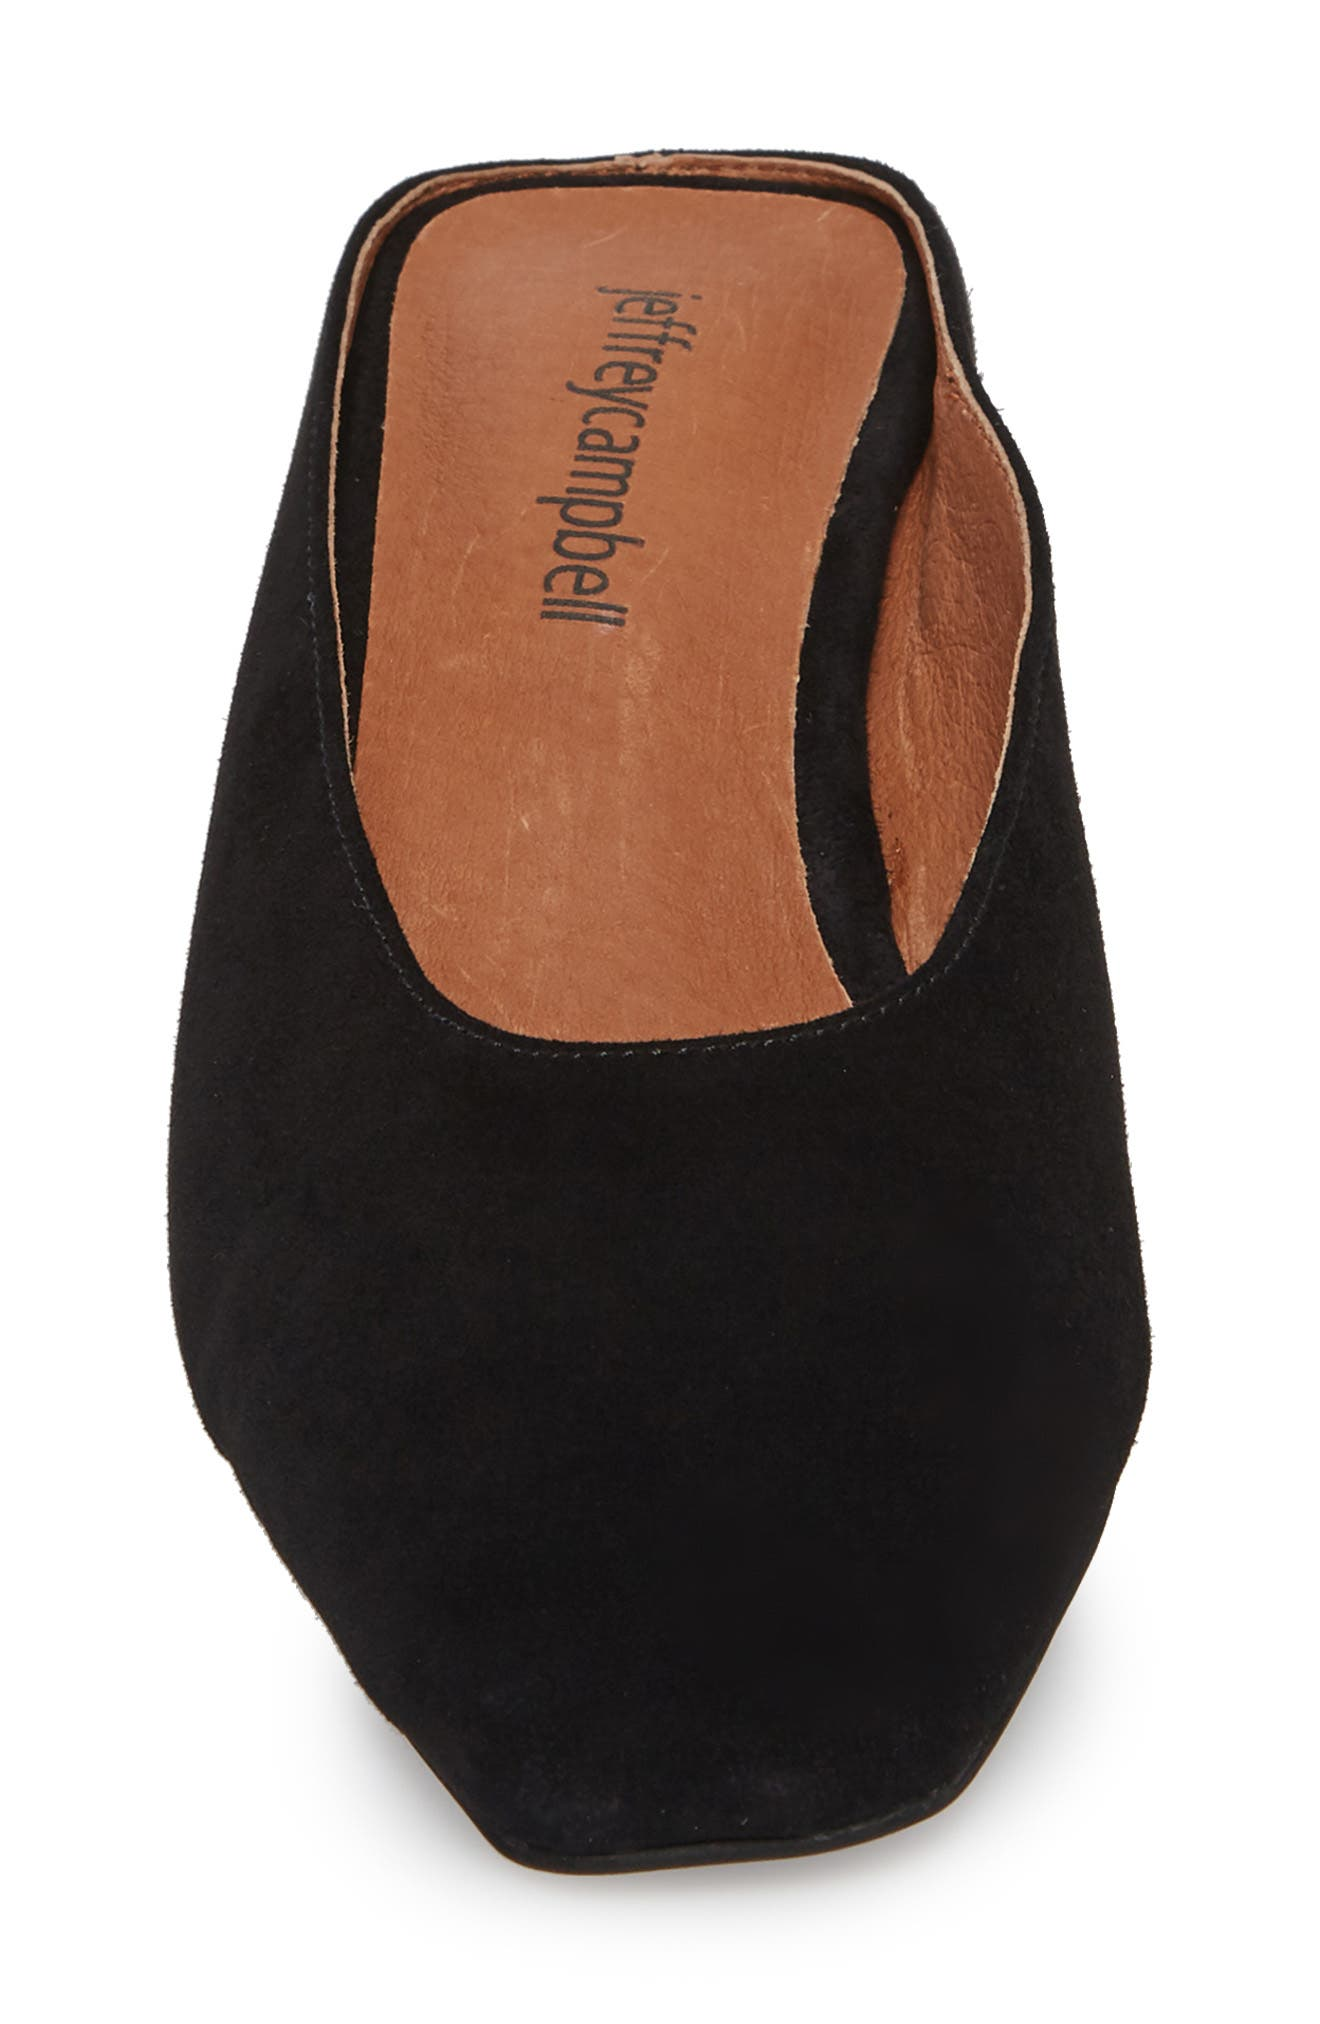 JEFFREY CAMPBELL,                             Cryptic Statement Heel Mule,                             Alternate thumbnail 4, color,                             005